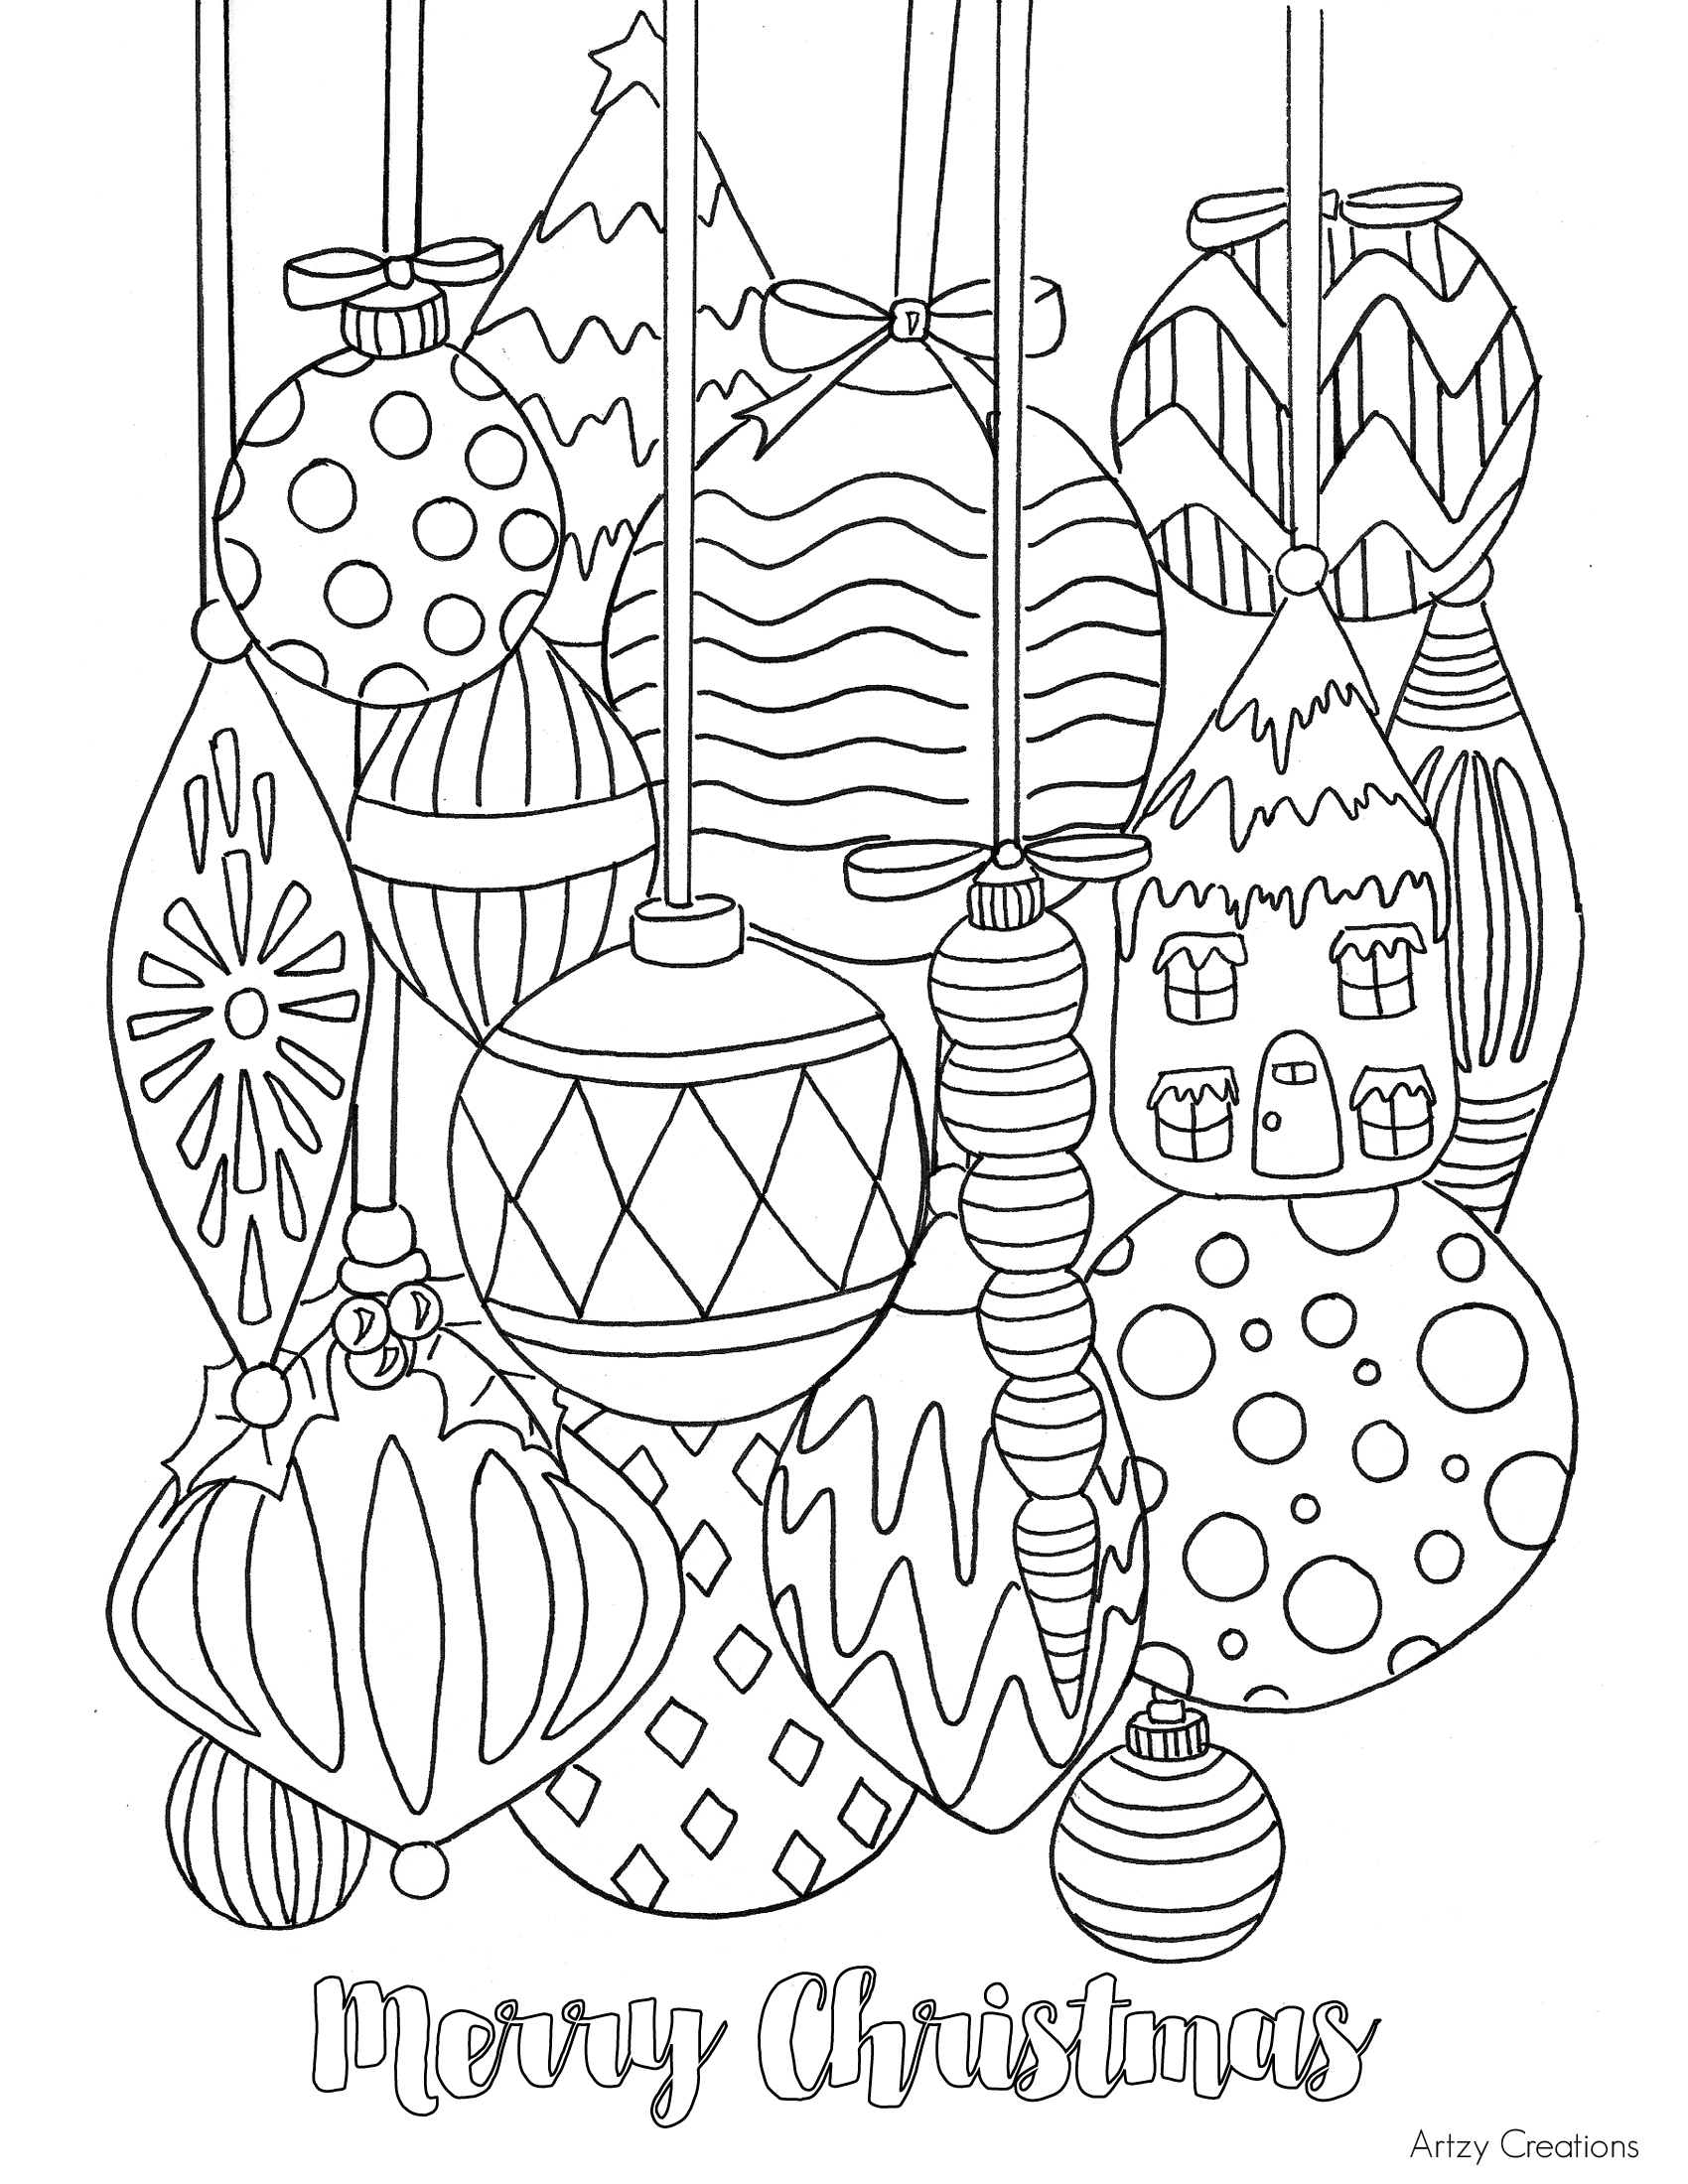 Free Christmas Ornament Coloring Page Tgif This Coloring Pages Ornaments Printable